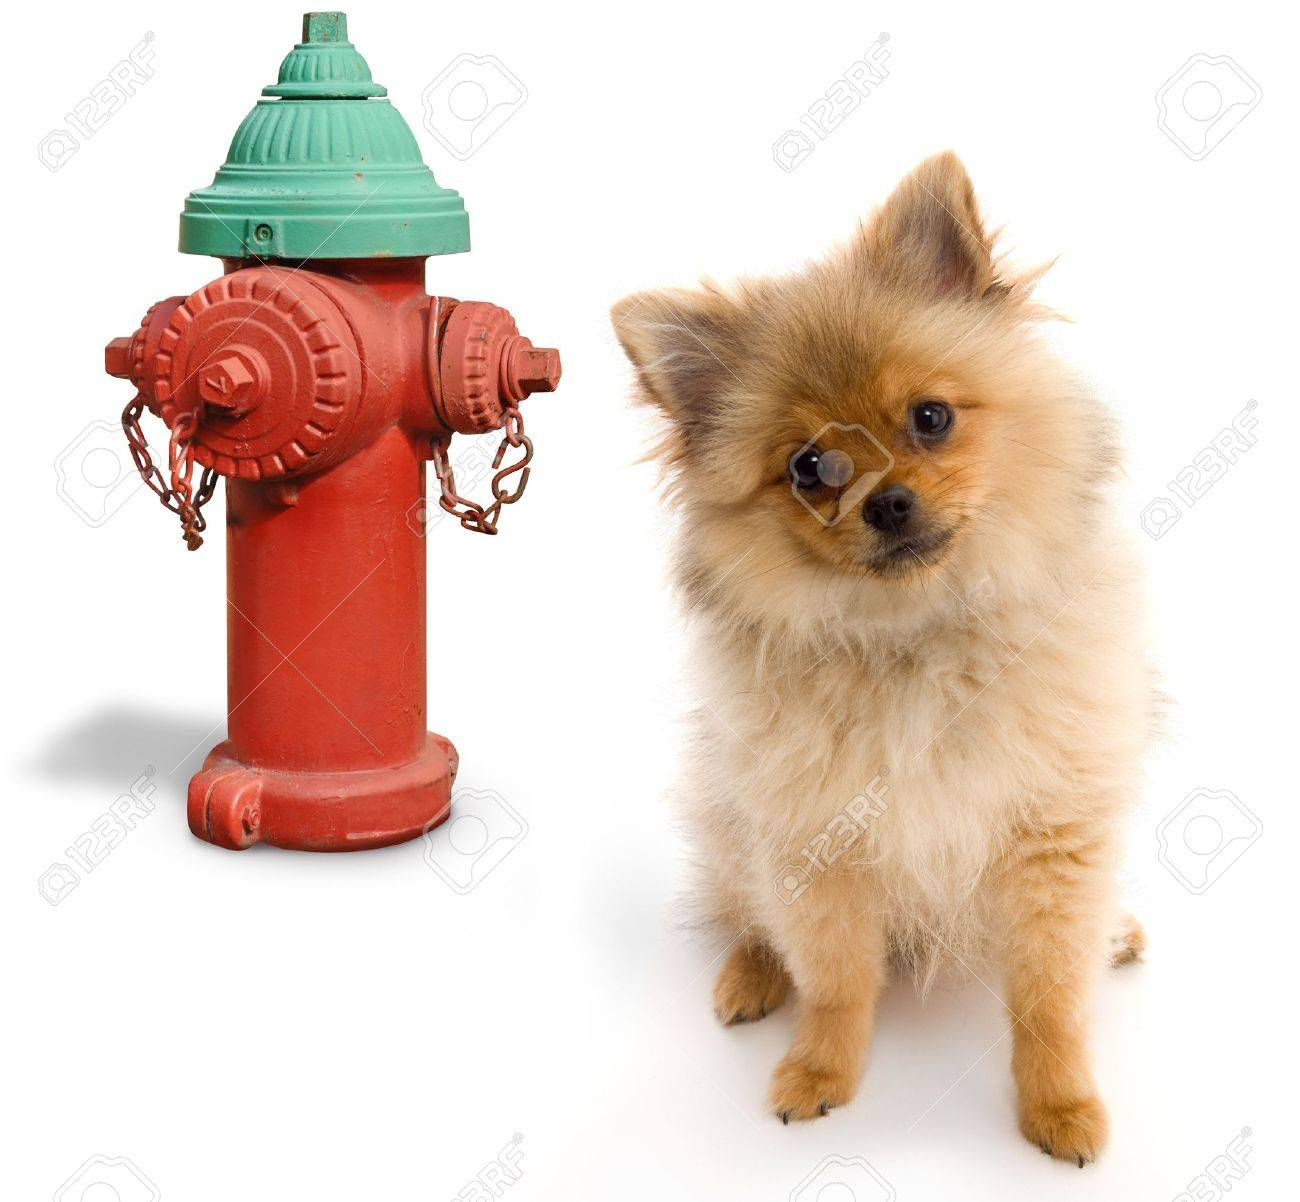 Pomeranian posing next to a fire hydrant on a white background Stock Photo - 7053588